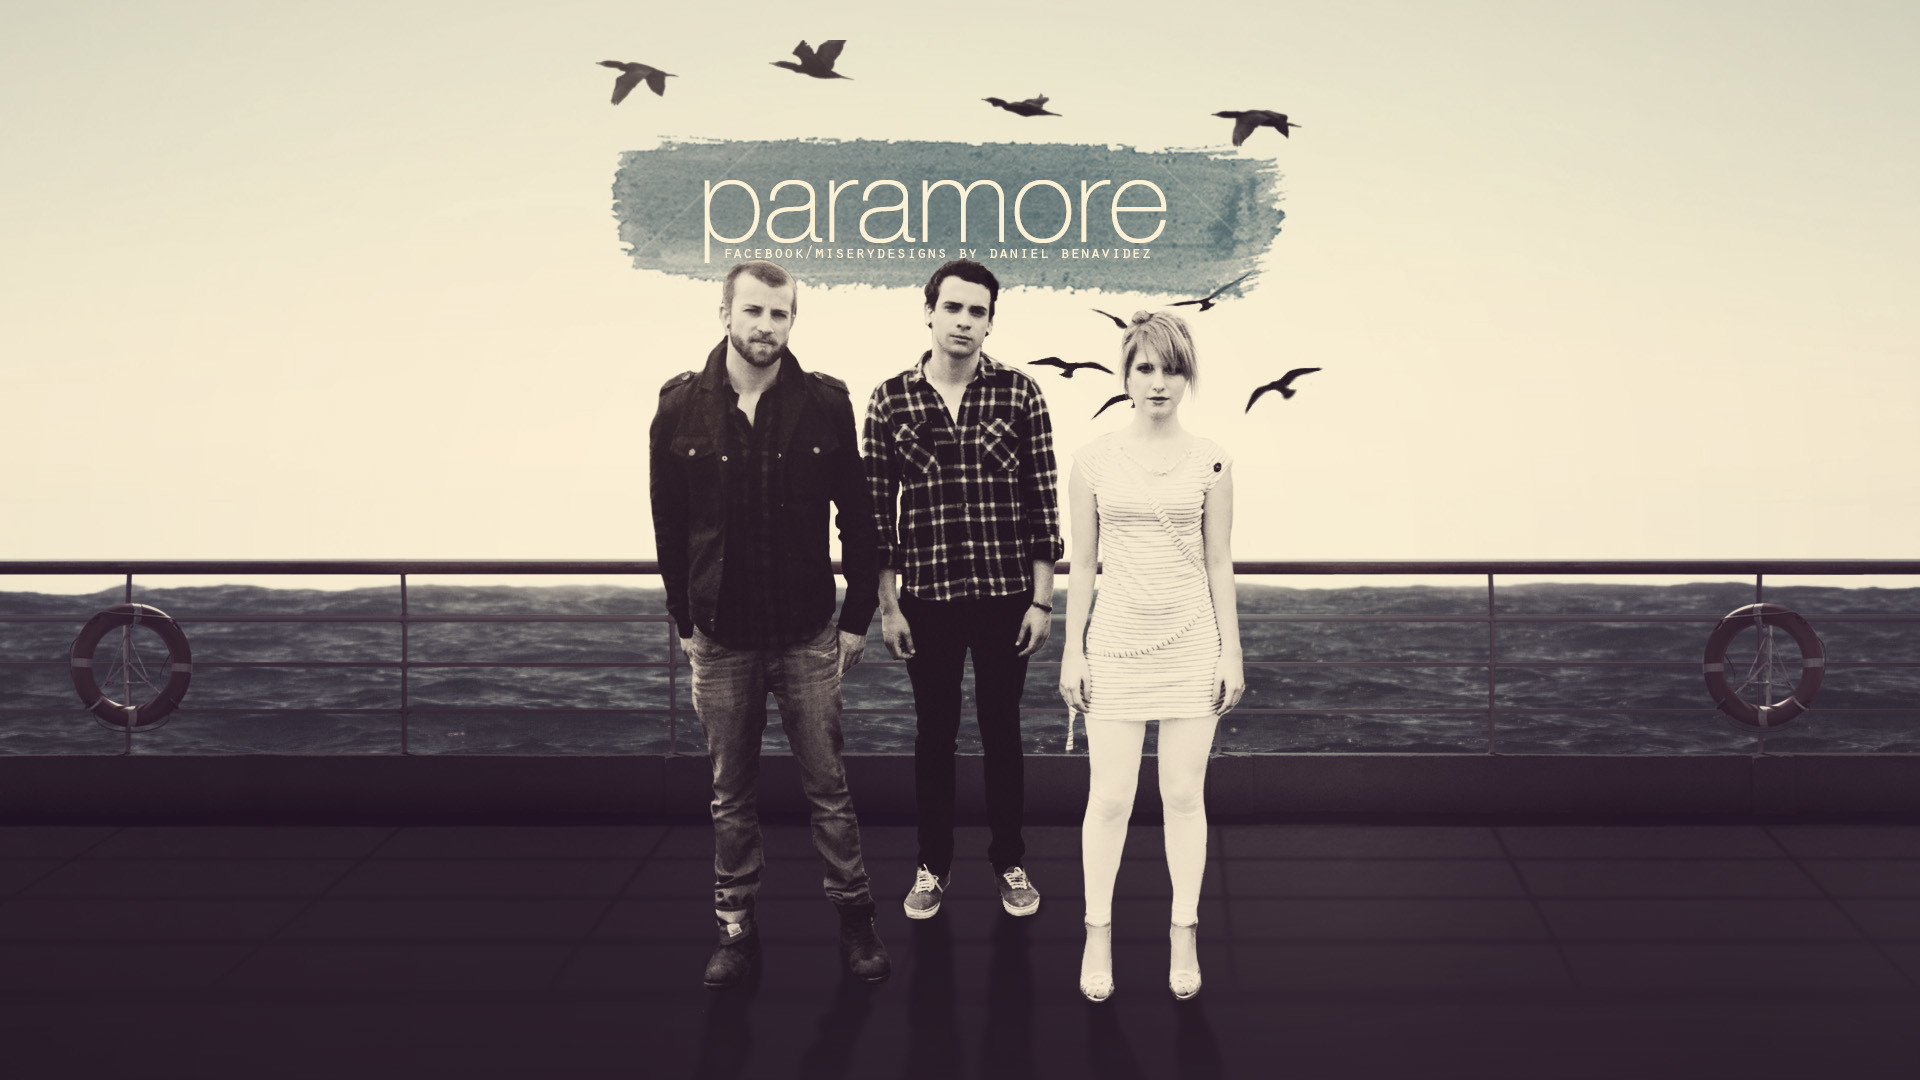 1920x1080 Paramore images PaRaM♥Re! HD wallpaper and background photos